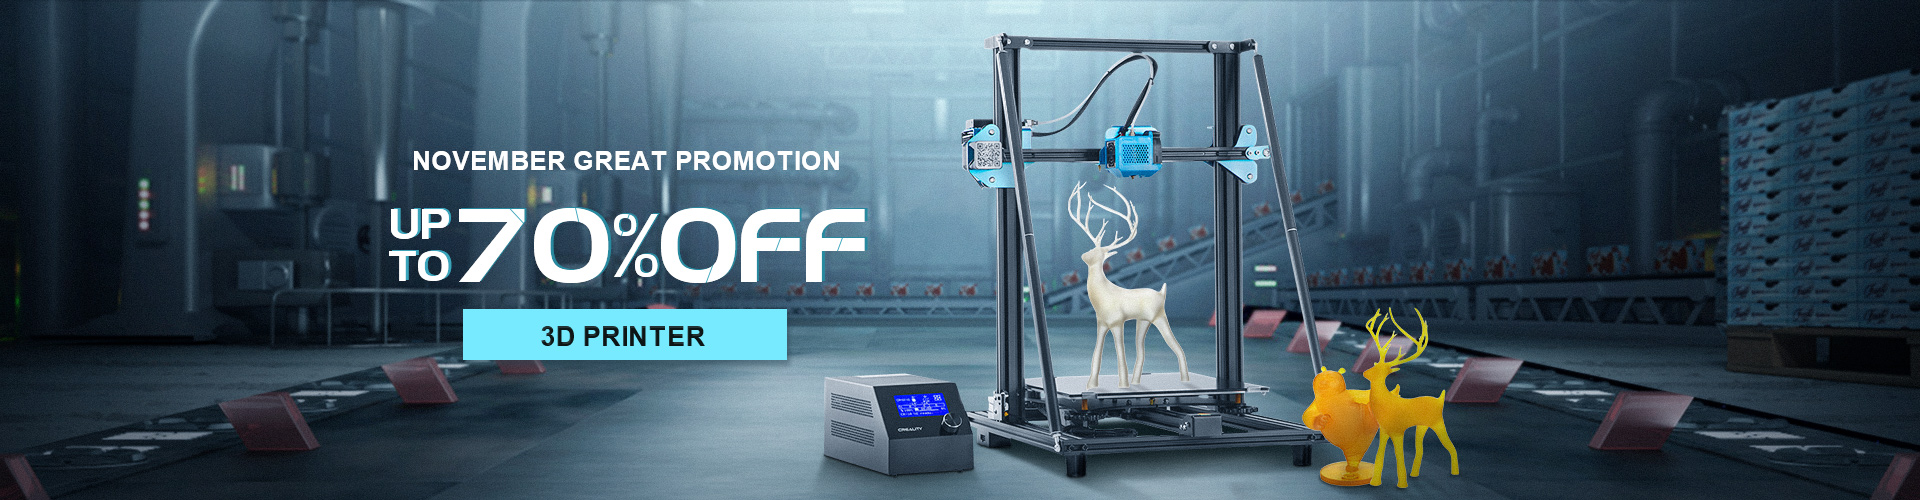 UP to 70%OFF for 3D Printer&Supplies November Great promotion